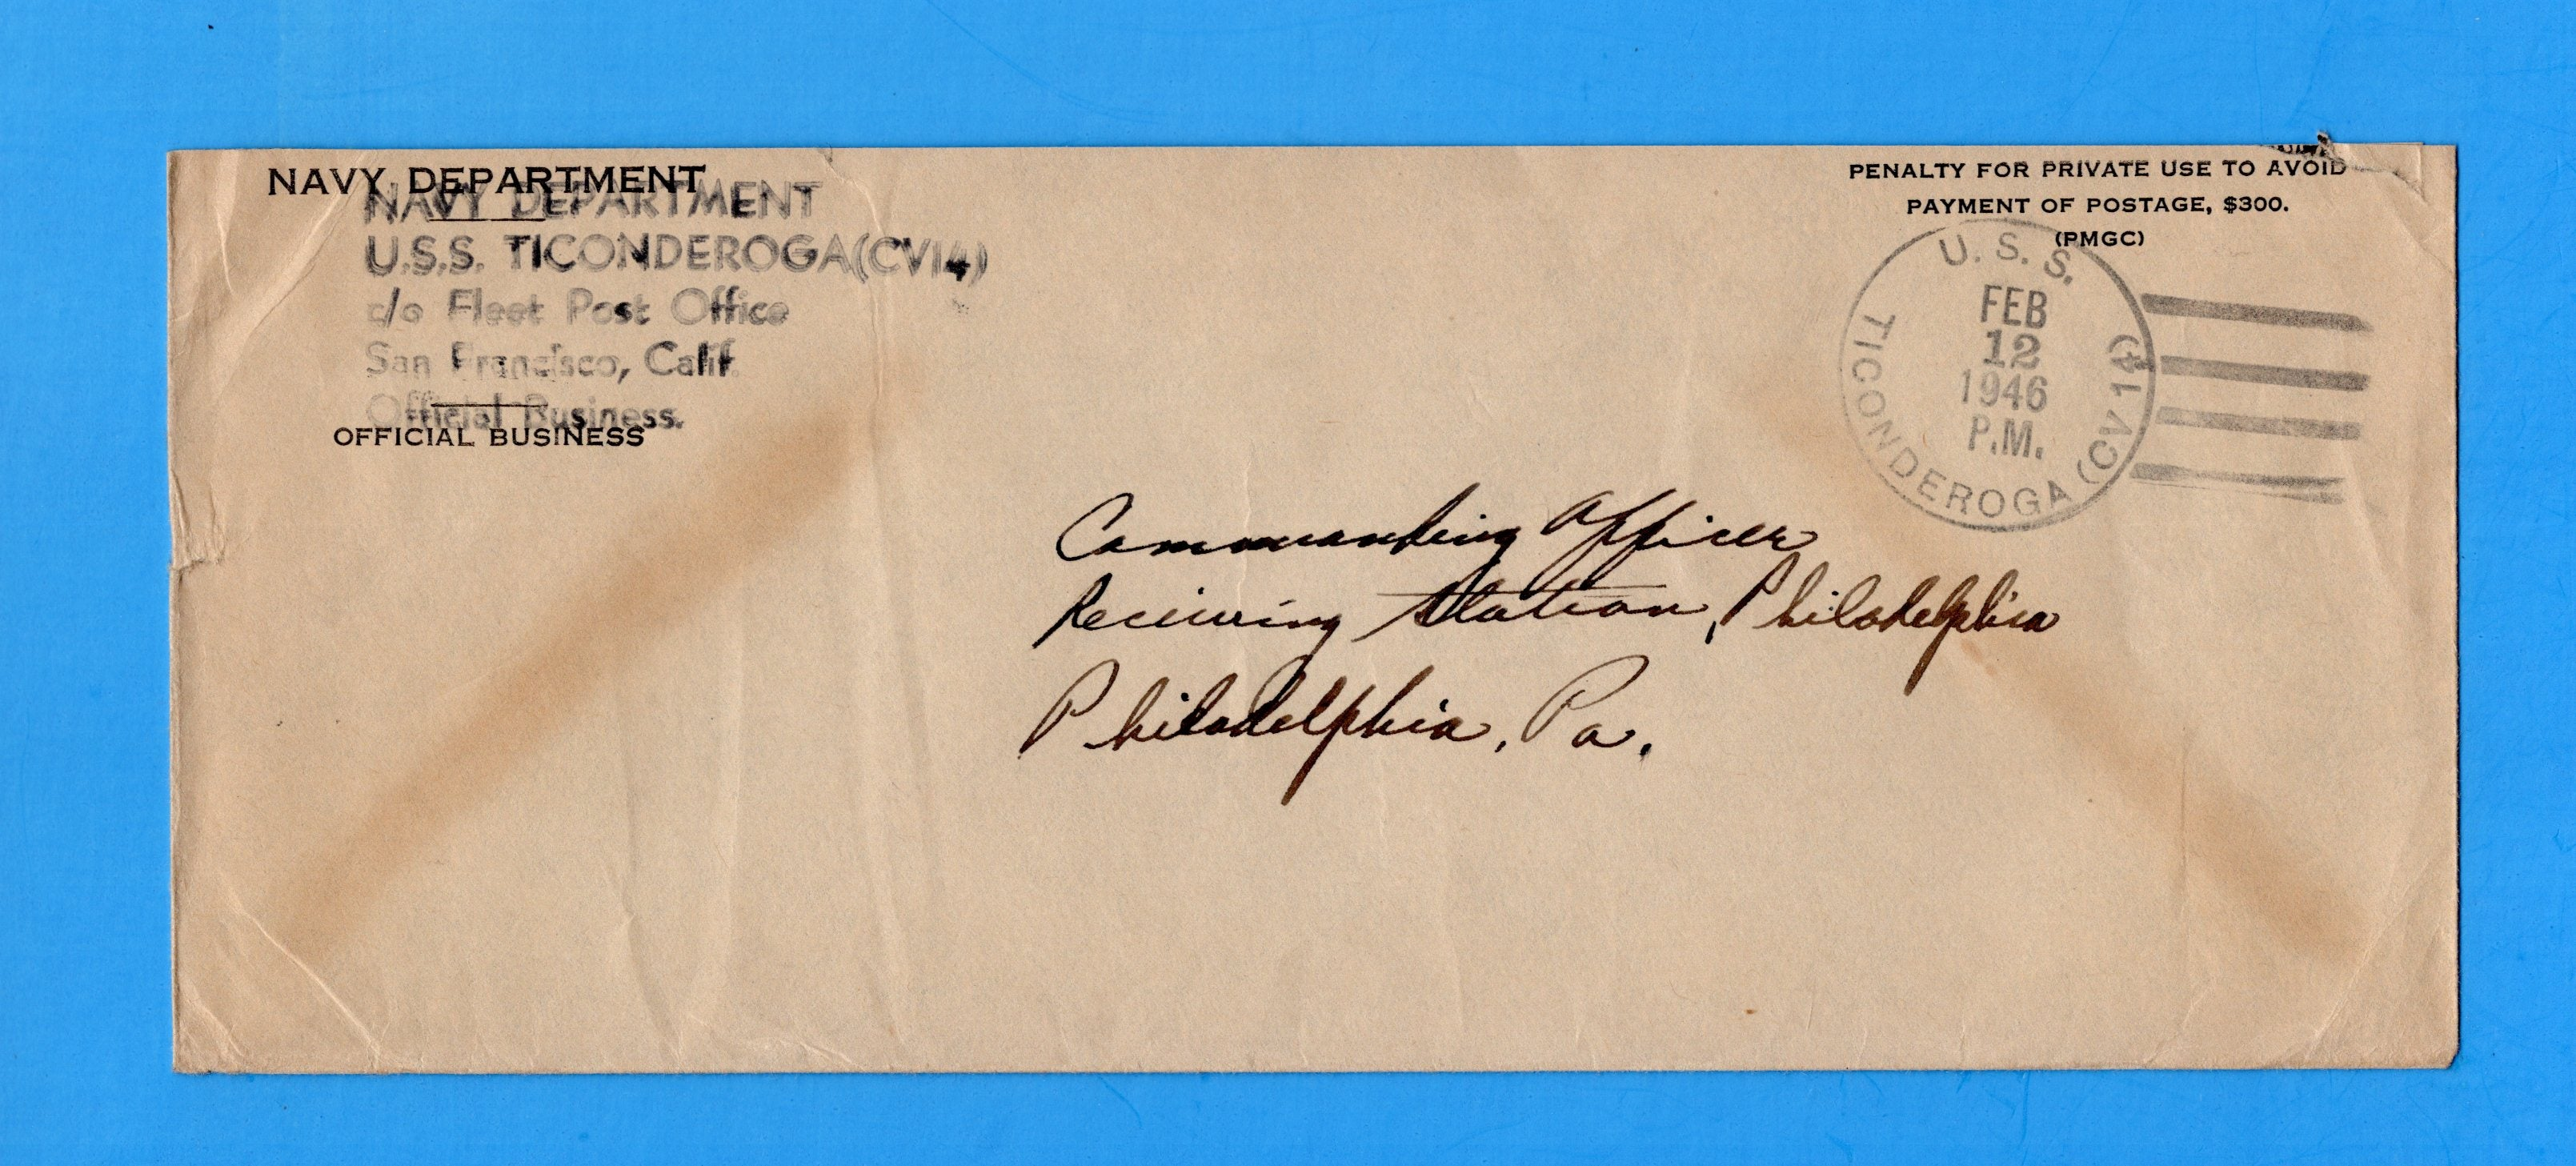 USS Ticonderoga CV-14 Navy Department Official Mail February 12, 1946